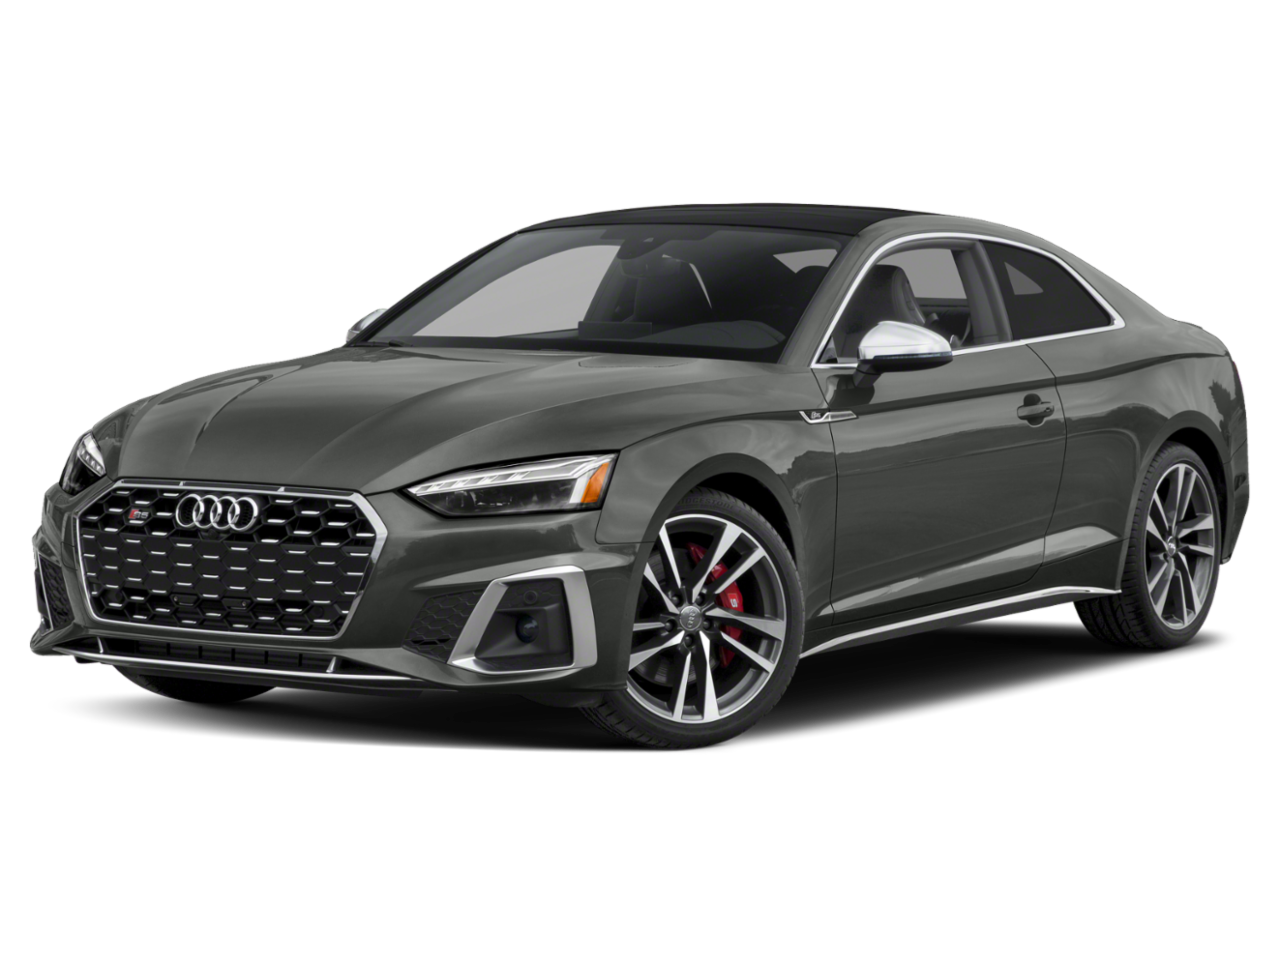 Buyer's Guide: 2021 Audi S5